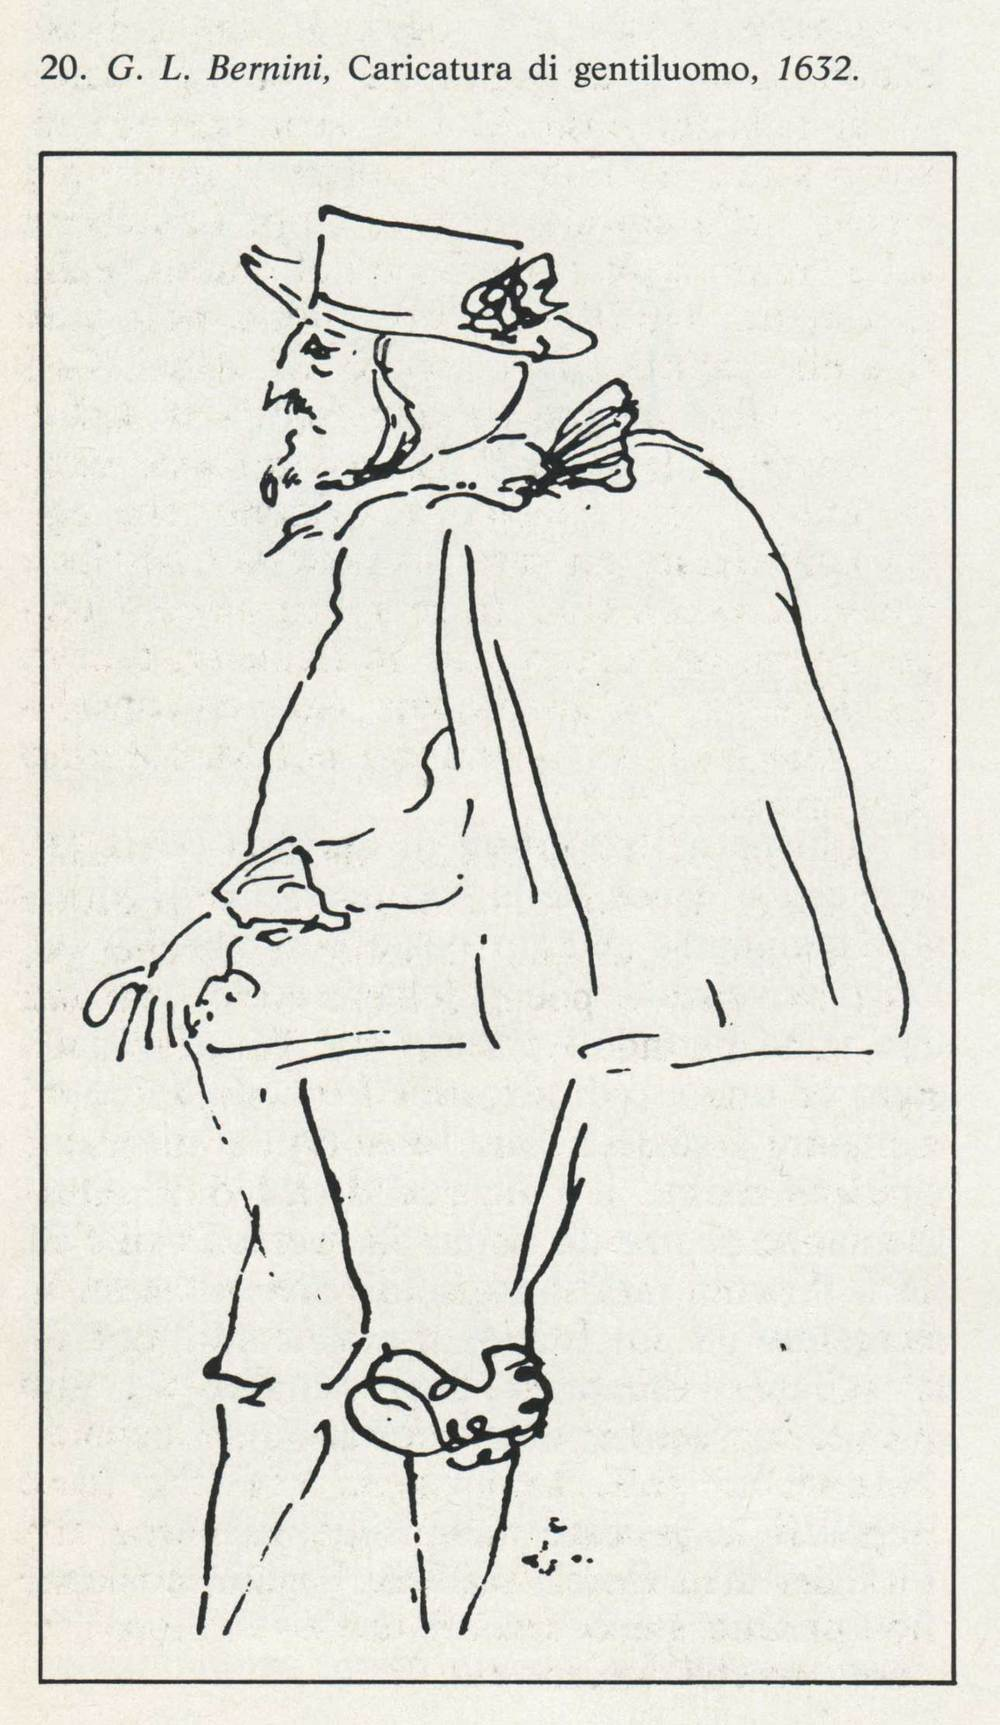 Caricature of a gentleman